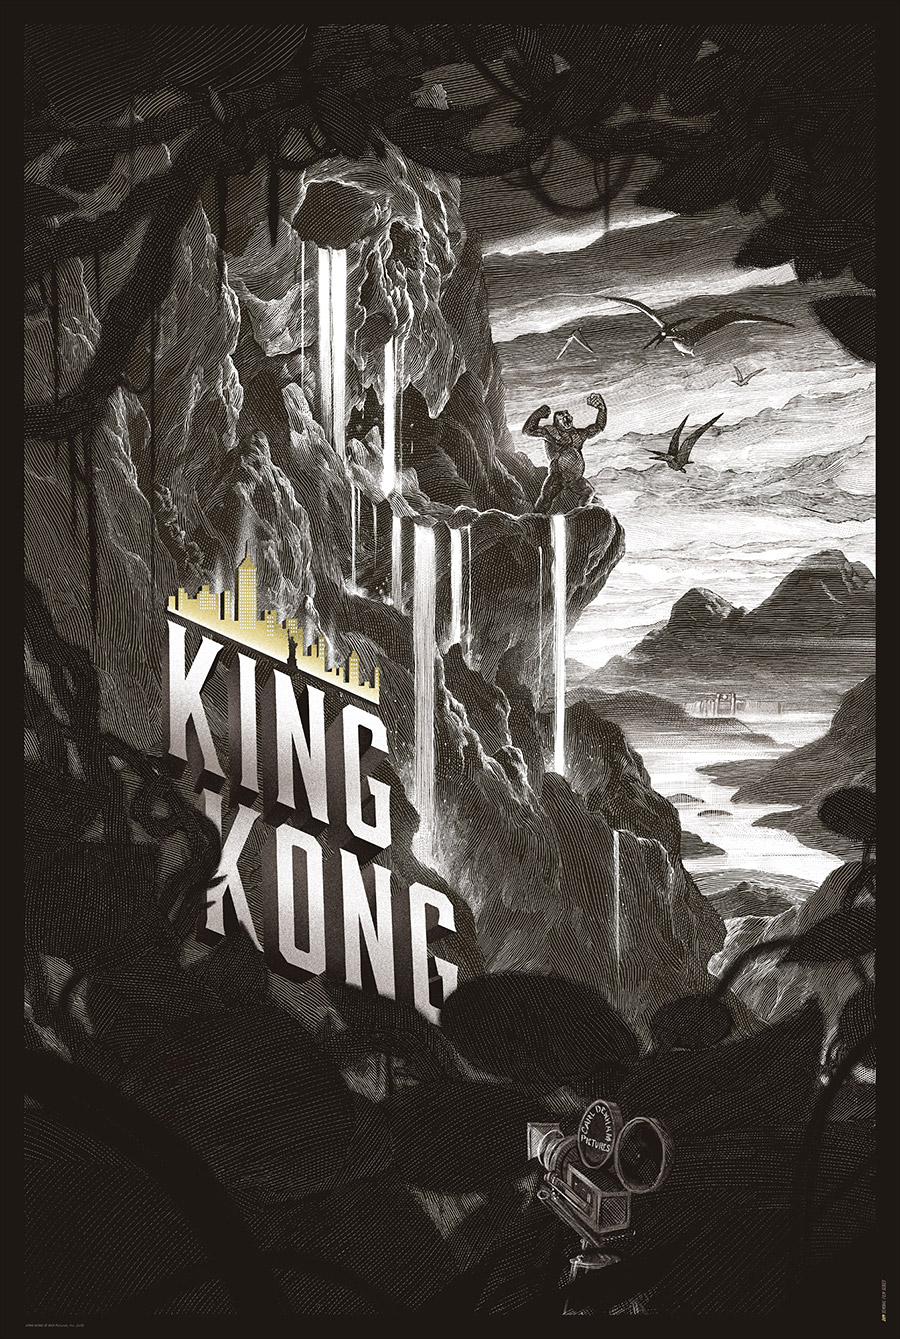 King Kong Poster from Nicolas Delort Variant